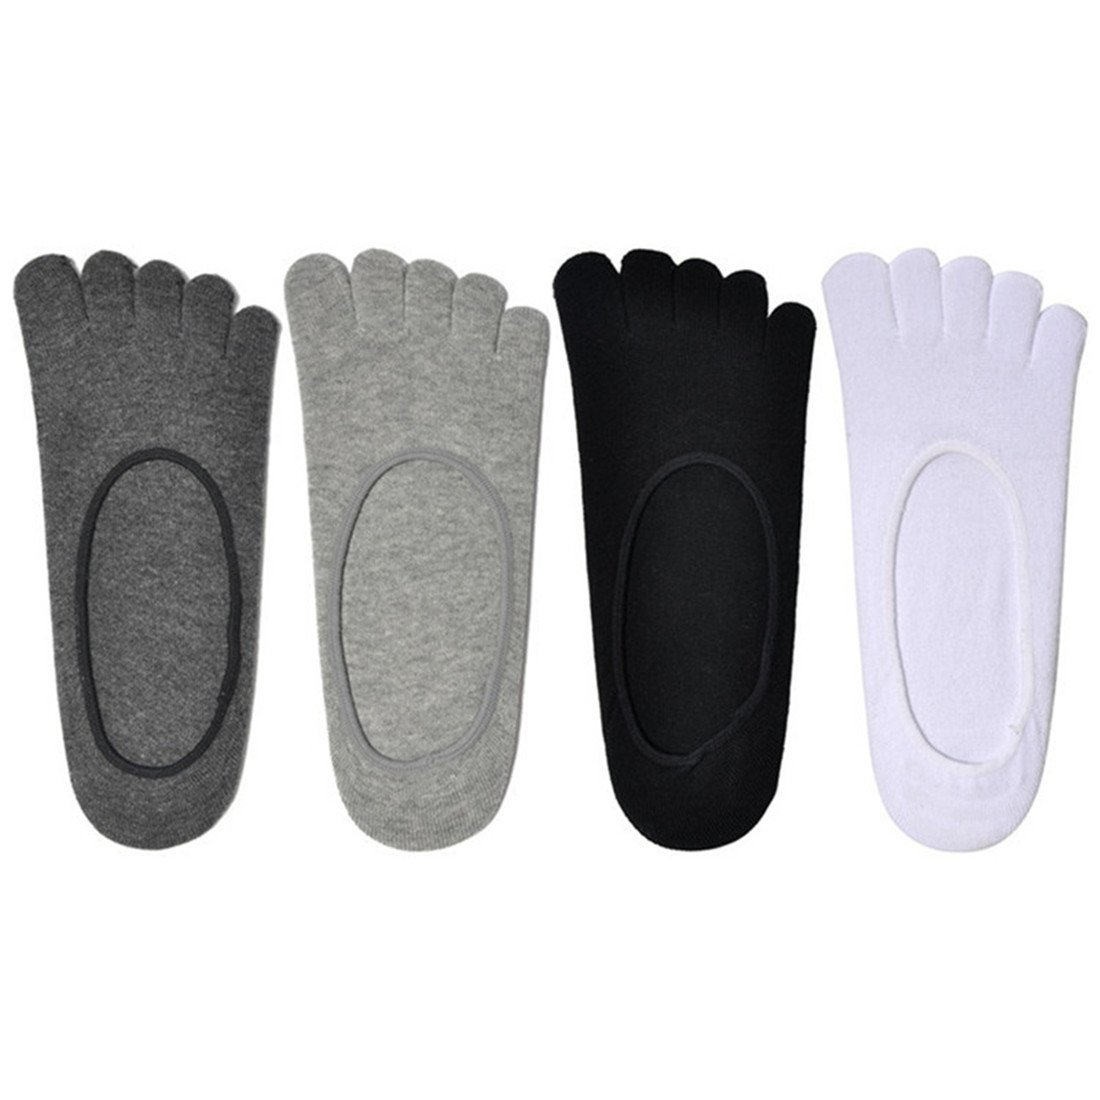 HLFaith 4 Pack Mens Low Cut Ankle Socks Sneaker Socks Cotton Non Slip Five Finger Toe Yoga Socks